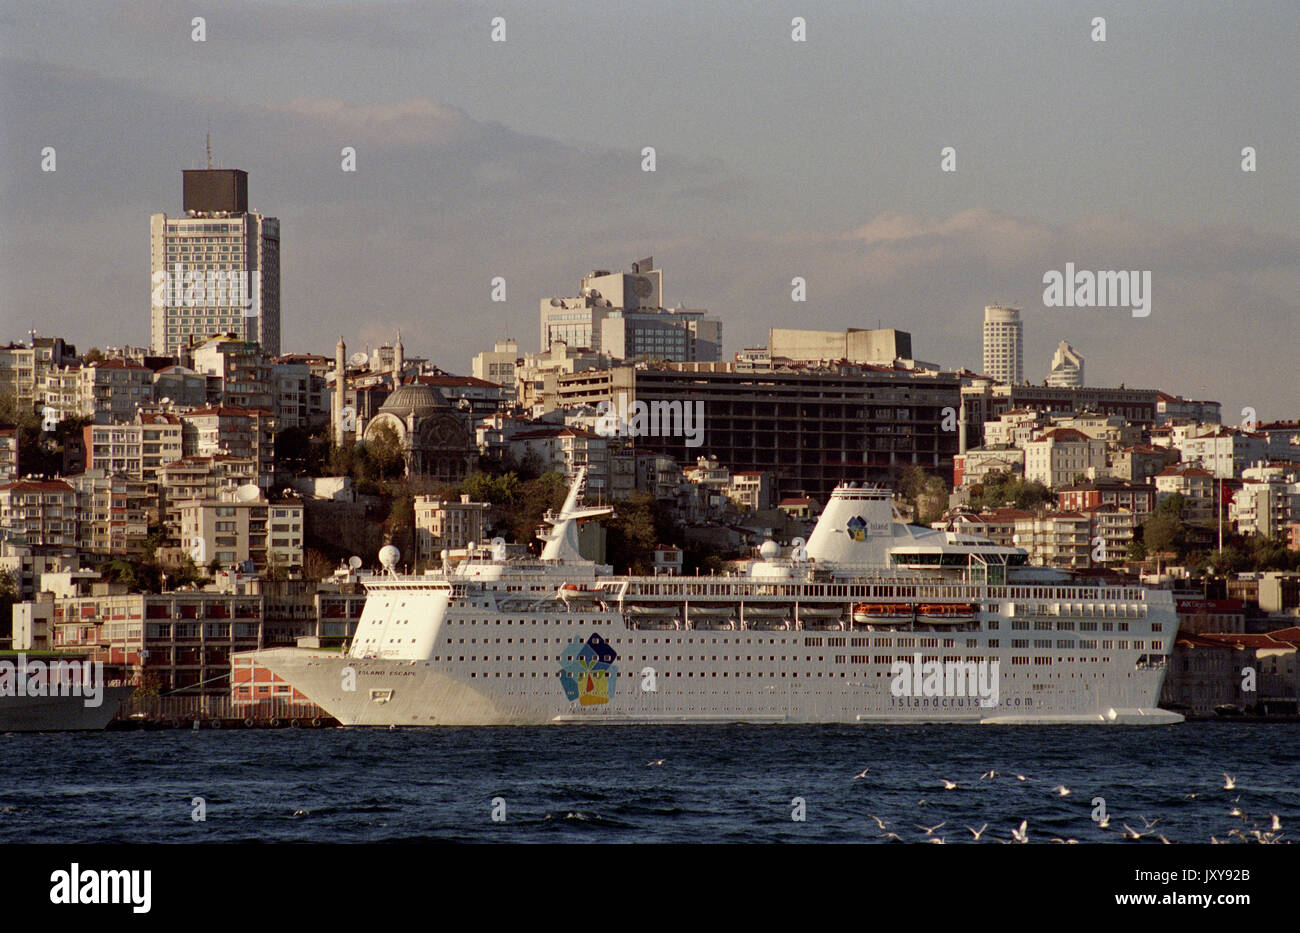 ISTANBUL TURQUIE - ISLAND ESCAPE CRUISER LINER 185 M LONG LARGEST FERRY IN 1982 IN  CITY HARBOUR - ISTANBUL HARBOR - SIVER FILM ©  Frédéric BEAUMONT - Stock Image